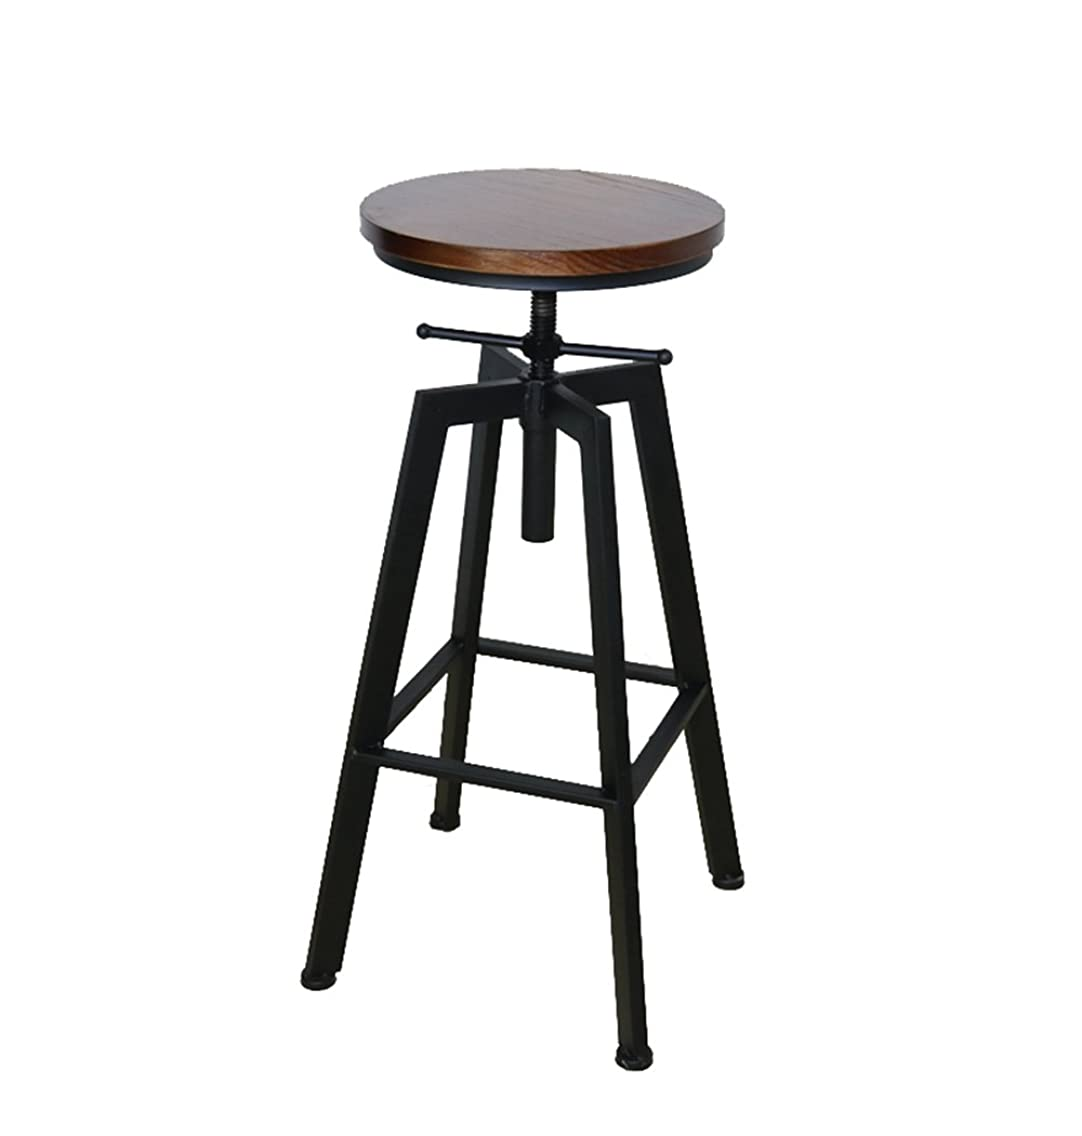 Bar chair American Iron Solid Wood Retro Industrial Rotary Lift Dining Chair Lift Height 60-80cm (Color : A)